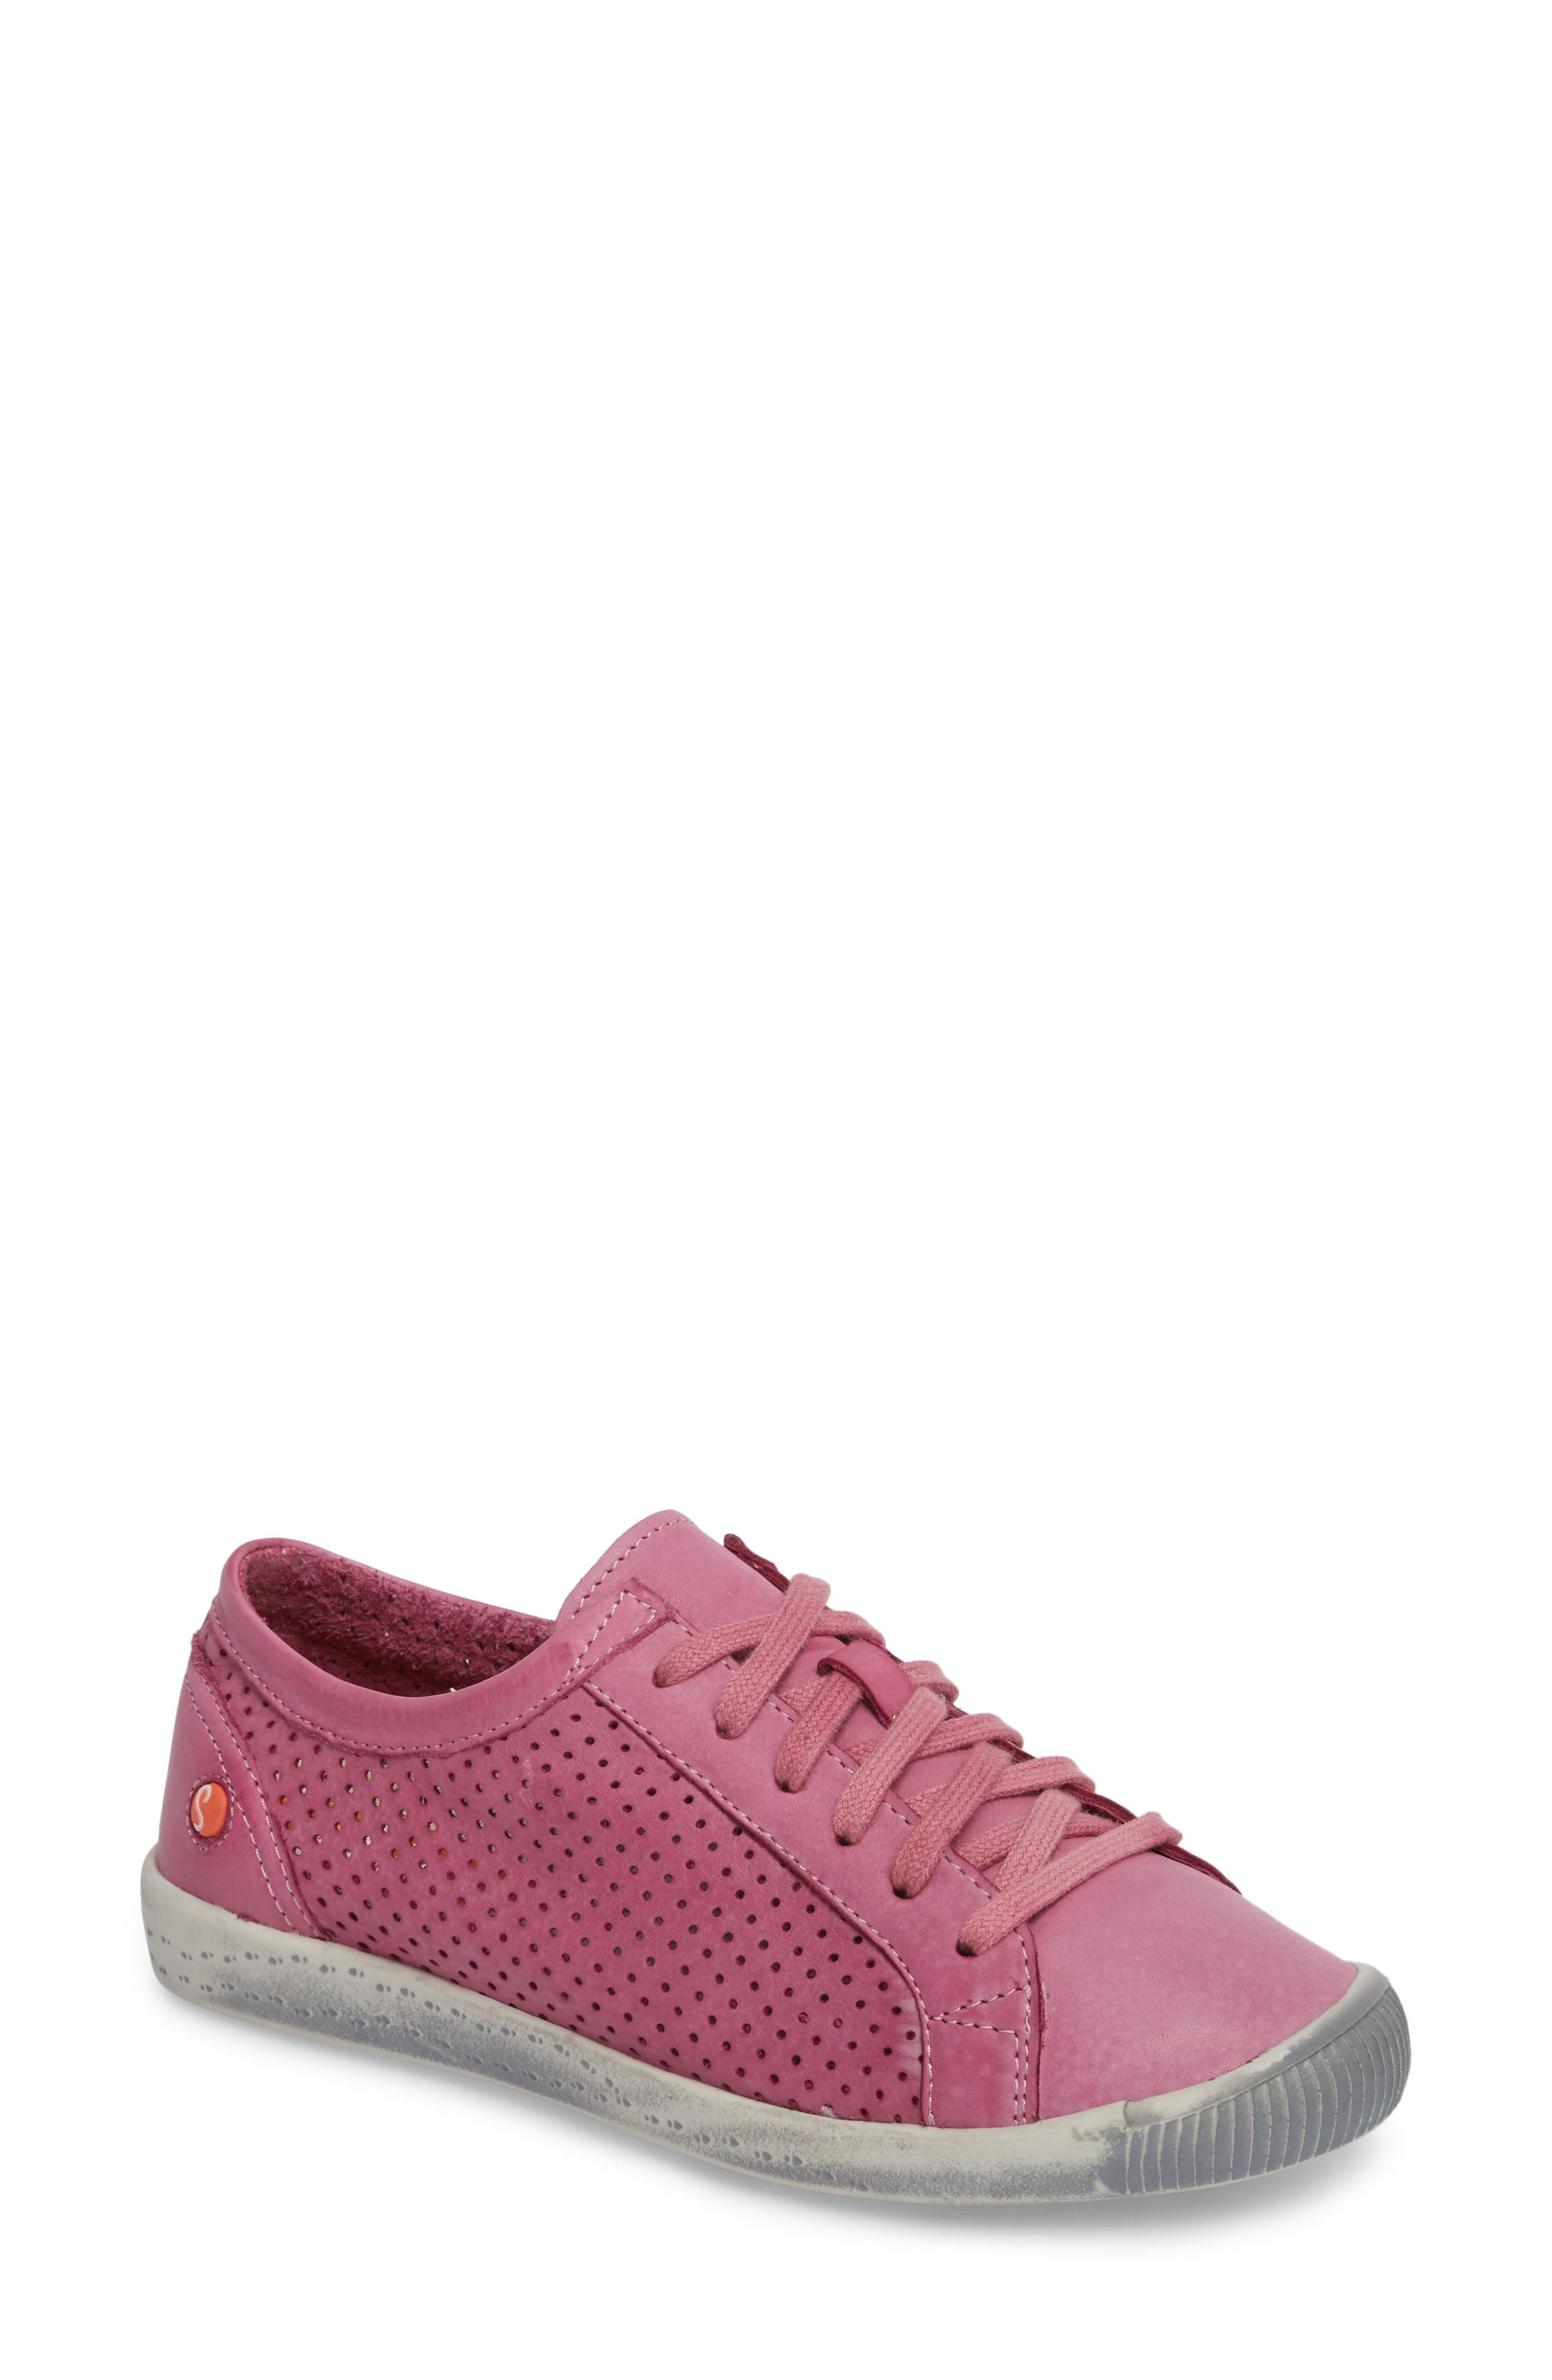 Softinos By Fly London Ica Sneaker - Pink